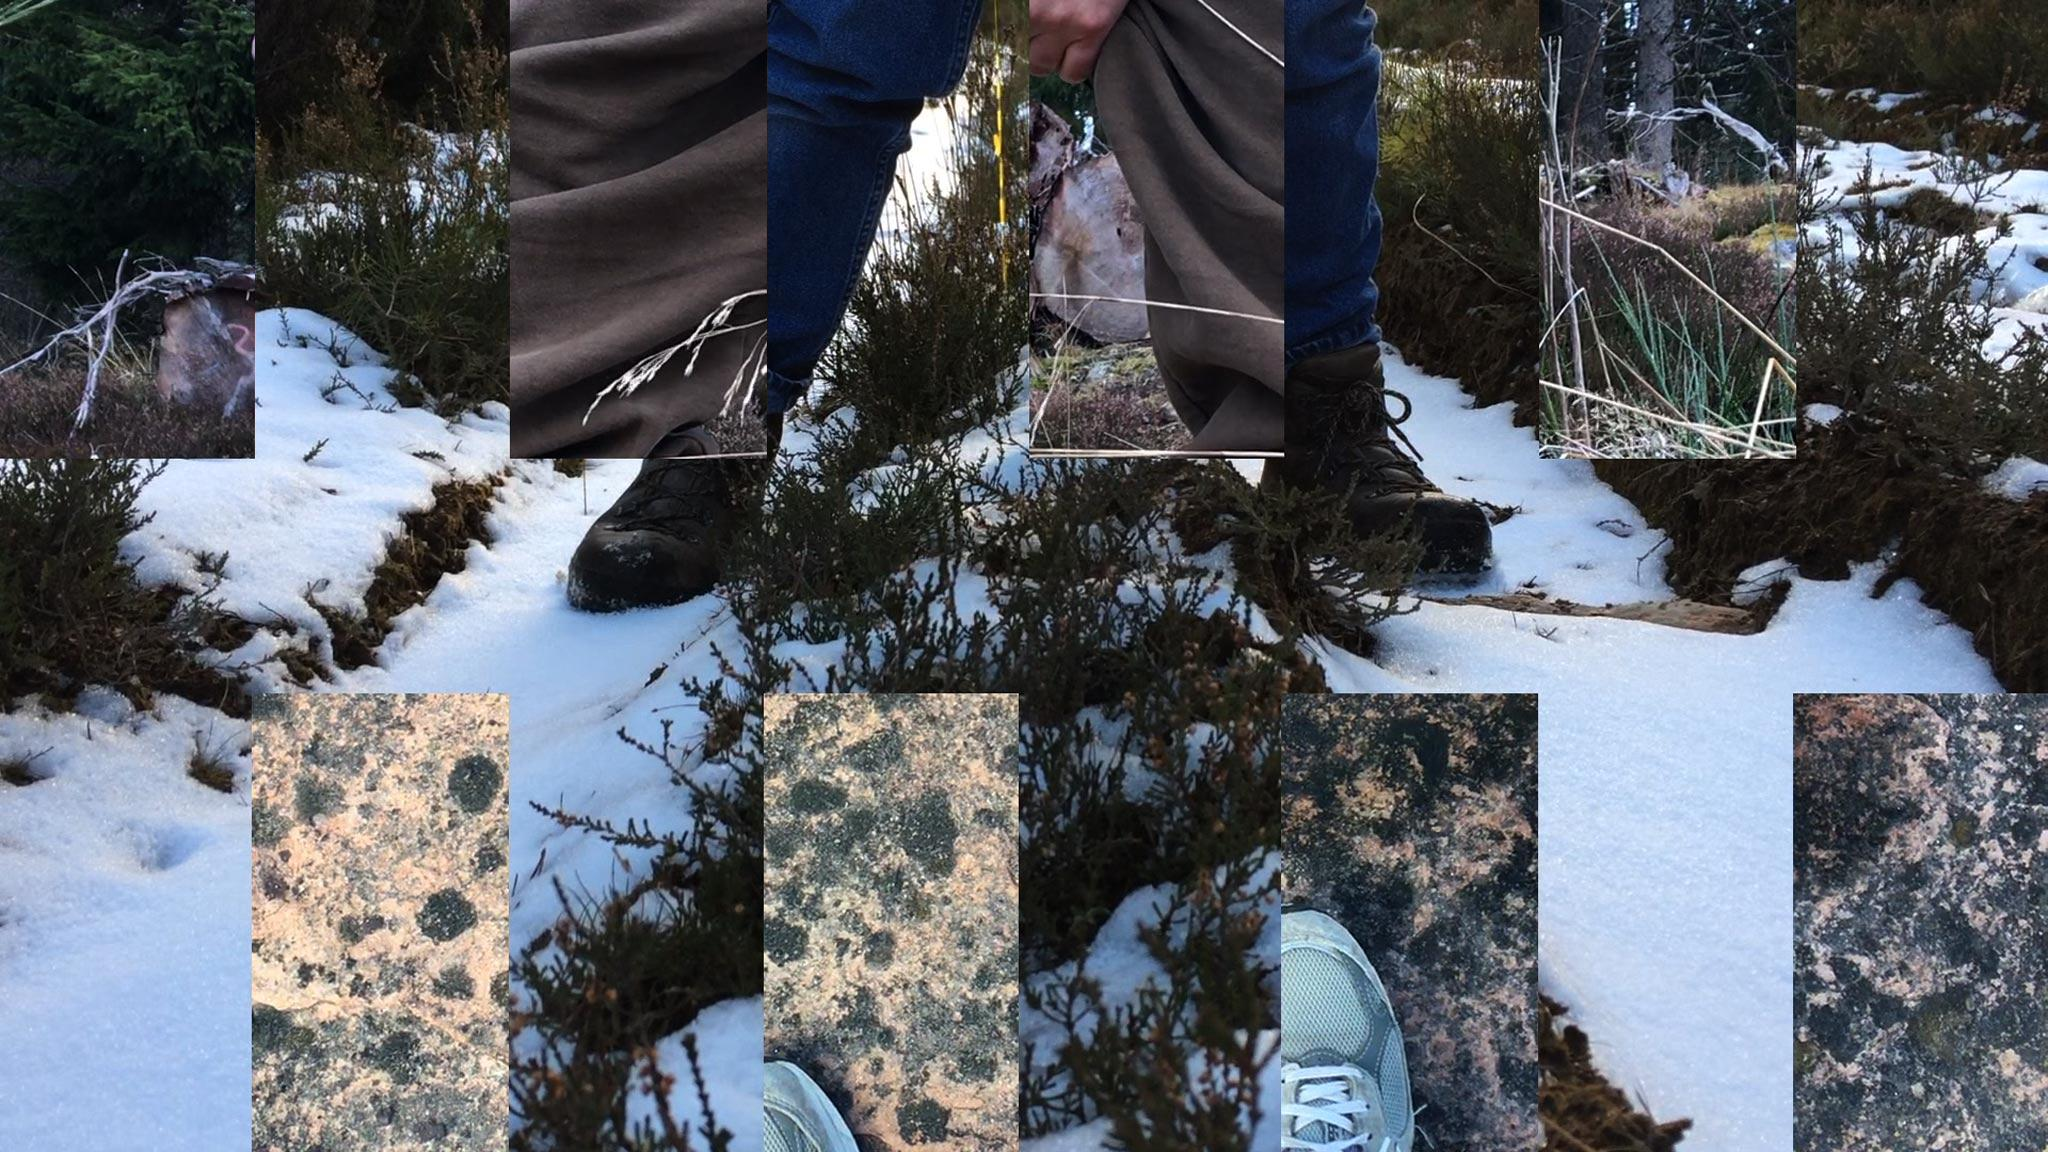 a digital collage with two images stitched together in a rectilinear pattern. One image is of boots on snow and the other of sneakers on rock